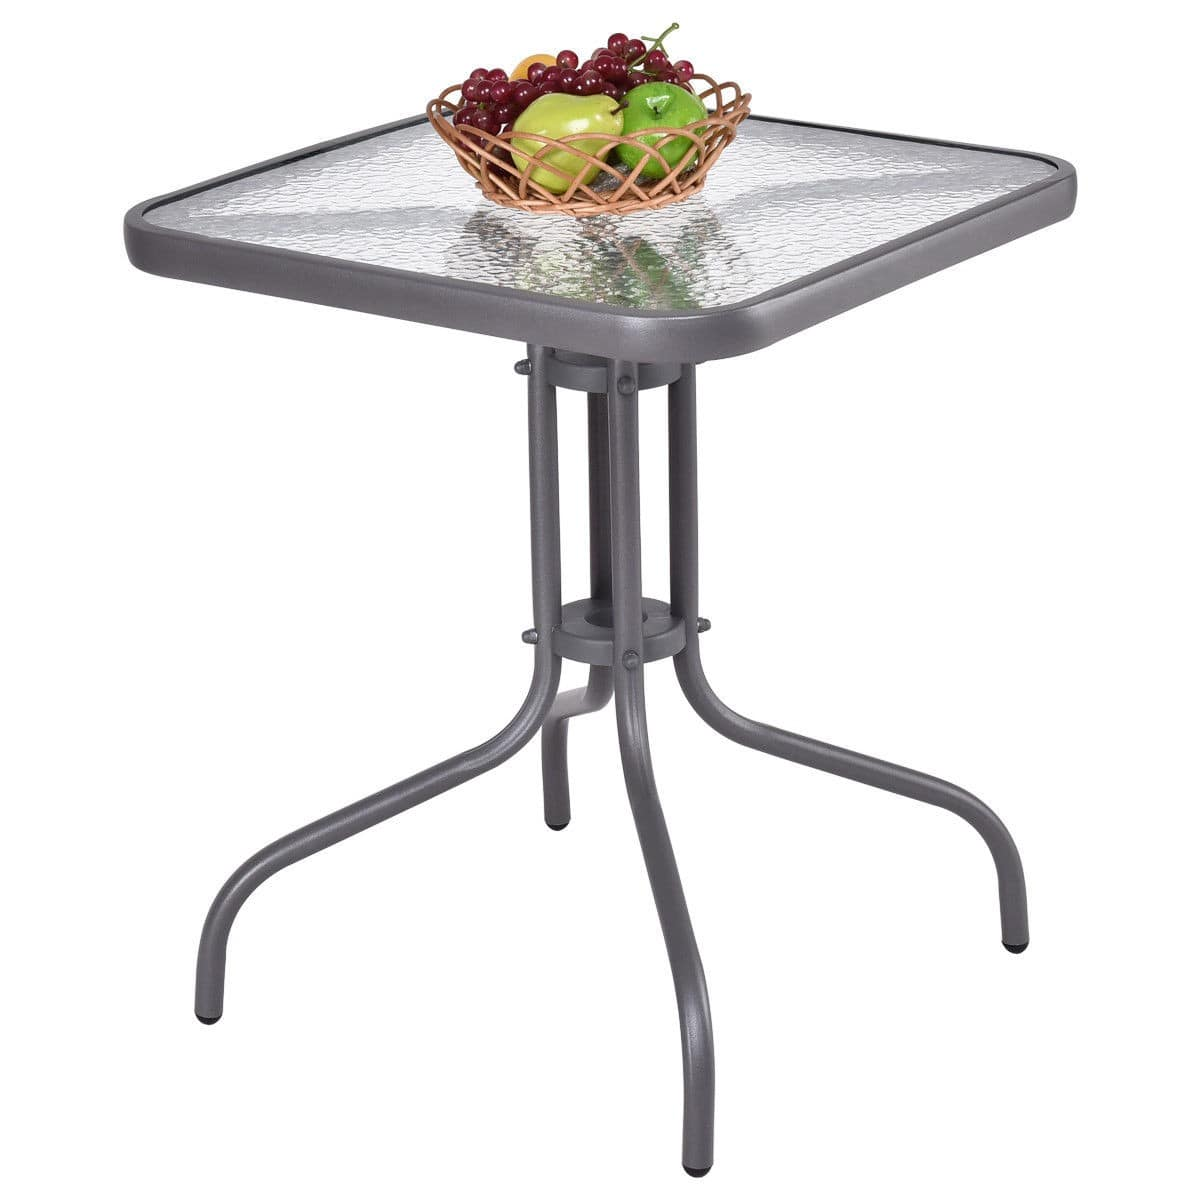 """Costway 24"""" Outdoor Patio Square Table with Tempered Glass Top $23.95 + Free Shipping"""